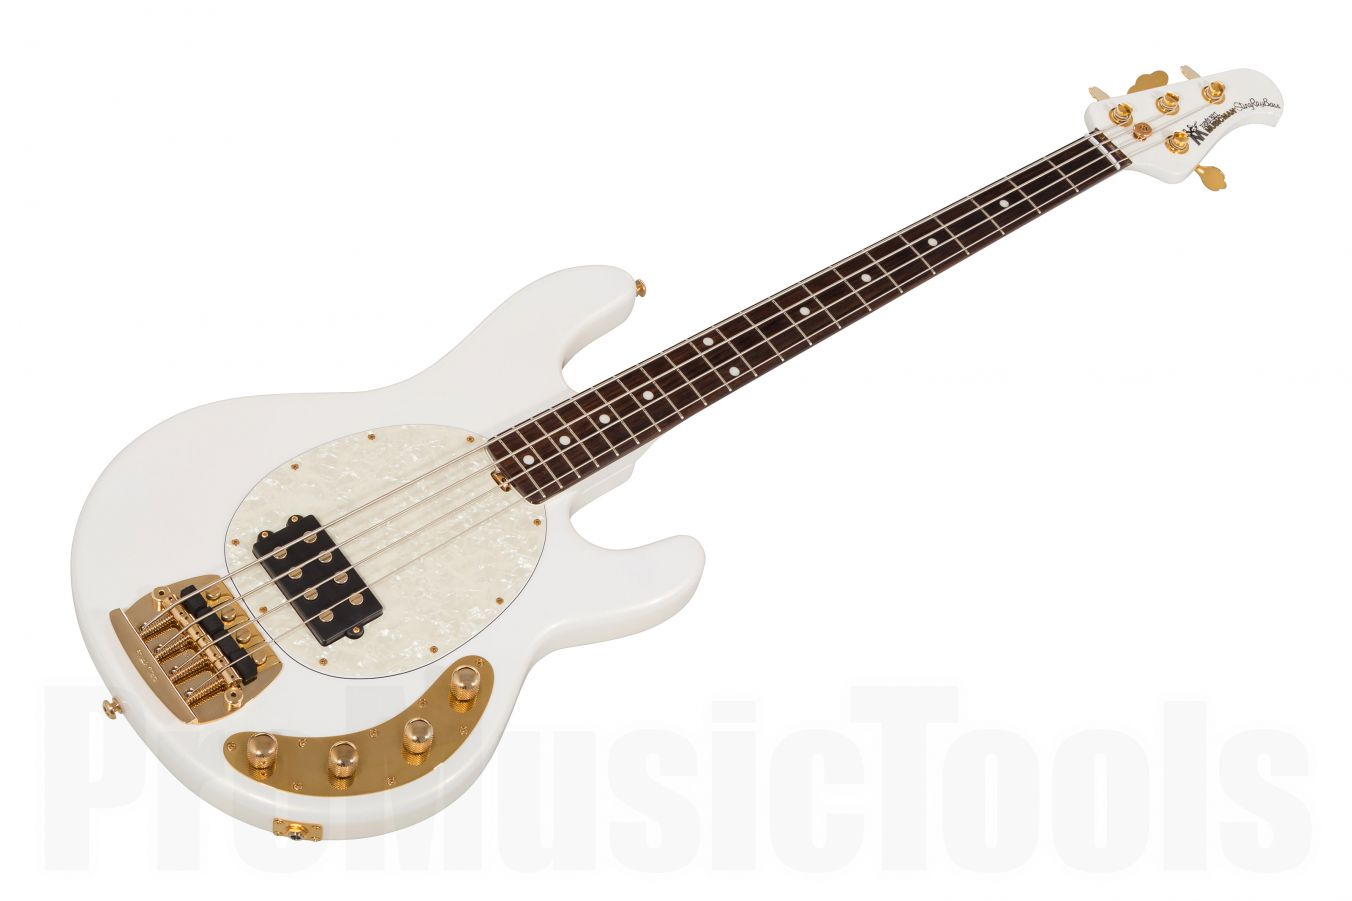 Music Man USA Classic Stingray 4 GW - Gilded White PDN Limited Edition